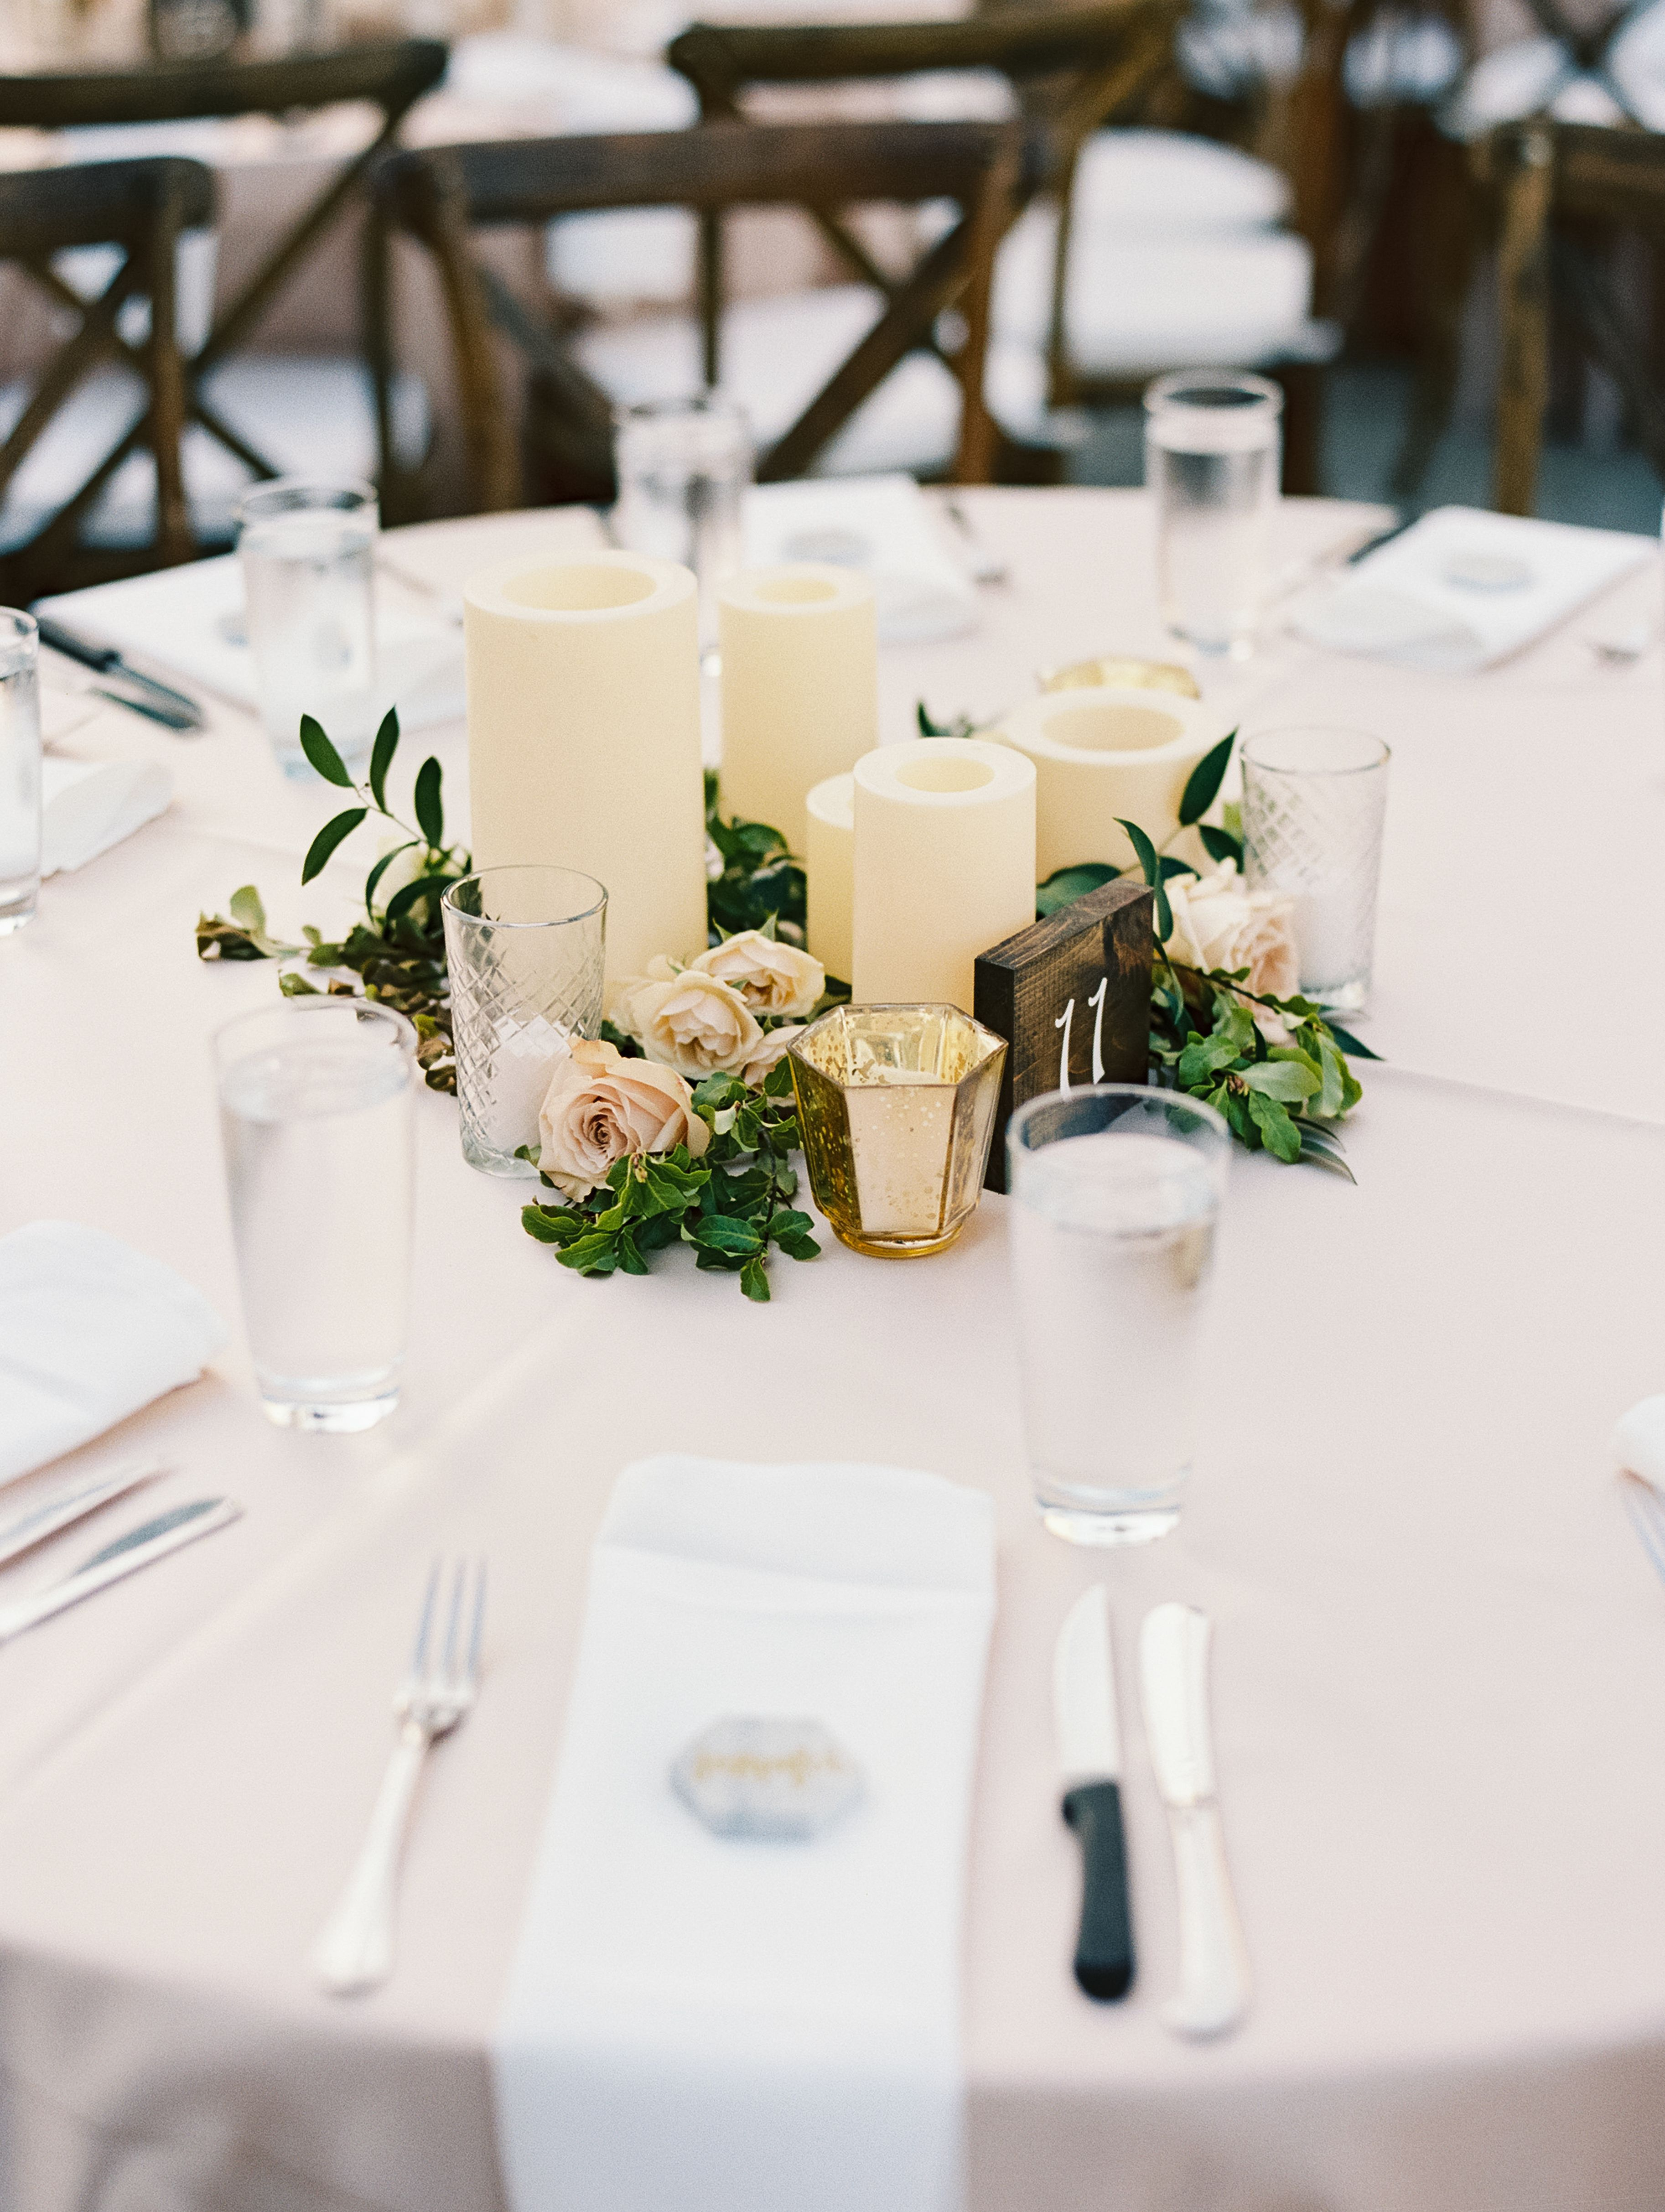 Stems Floral Design Event Styling Becca Pierson Photography Villa Antonia Wedding Austin Texas Flora With Images Peach Wedding Wedding Decorations Event Styling